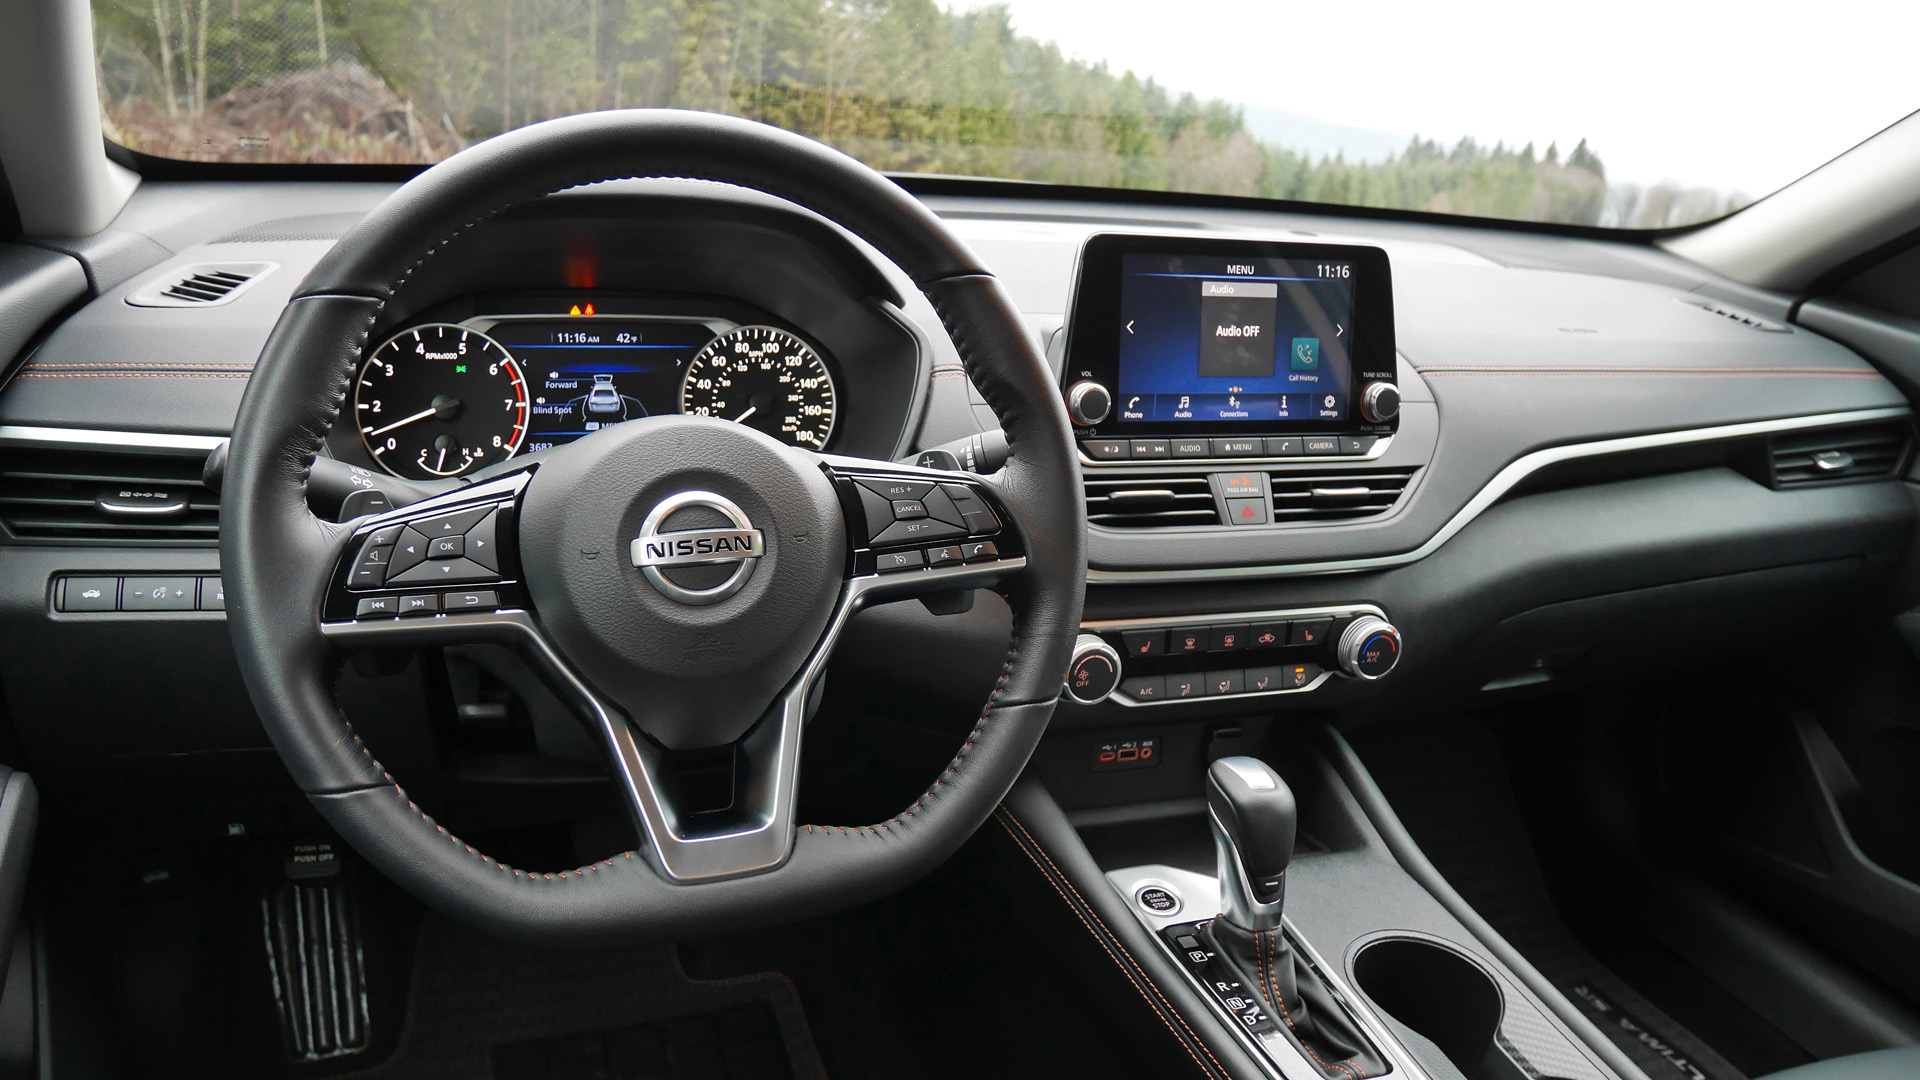 Certified Pre Owned Cars For Sale >> 2019 Nissan Altima SR Review | Driving impressions, specs ...